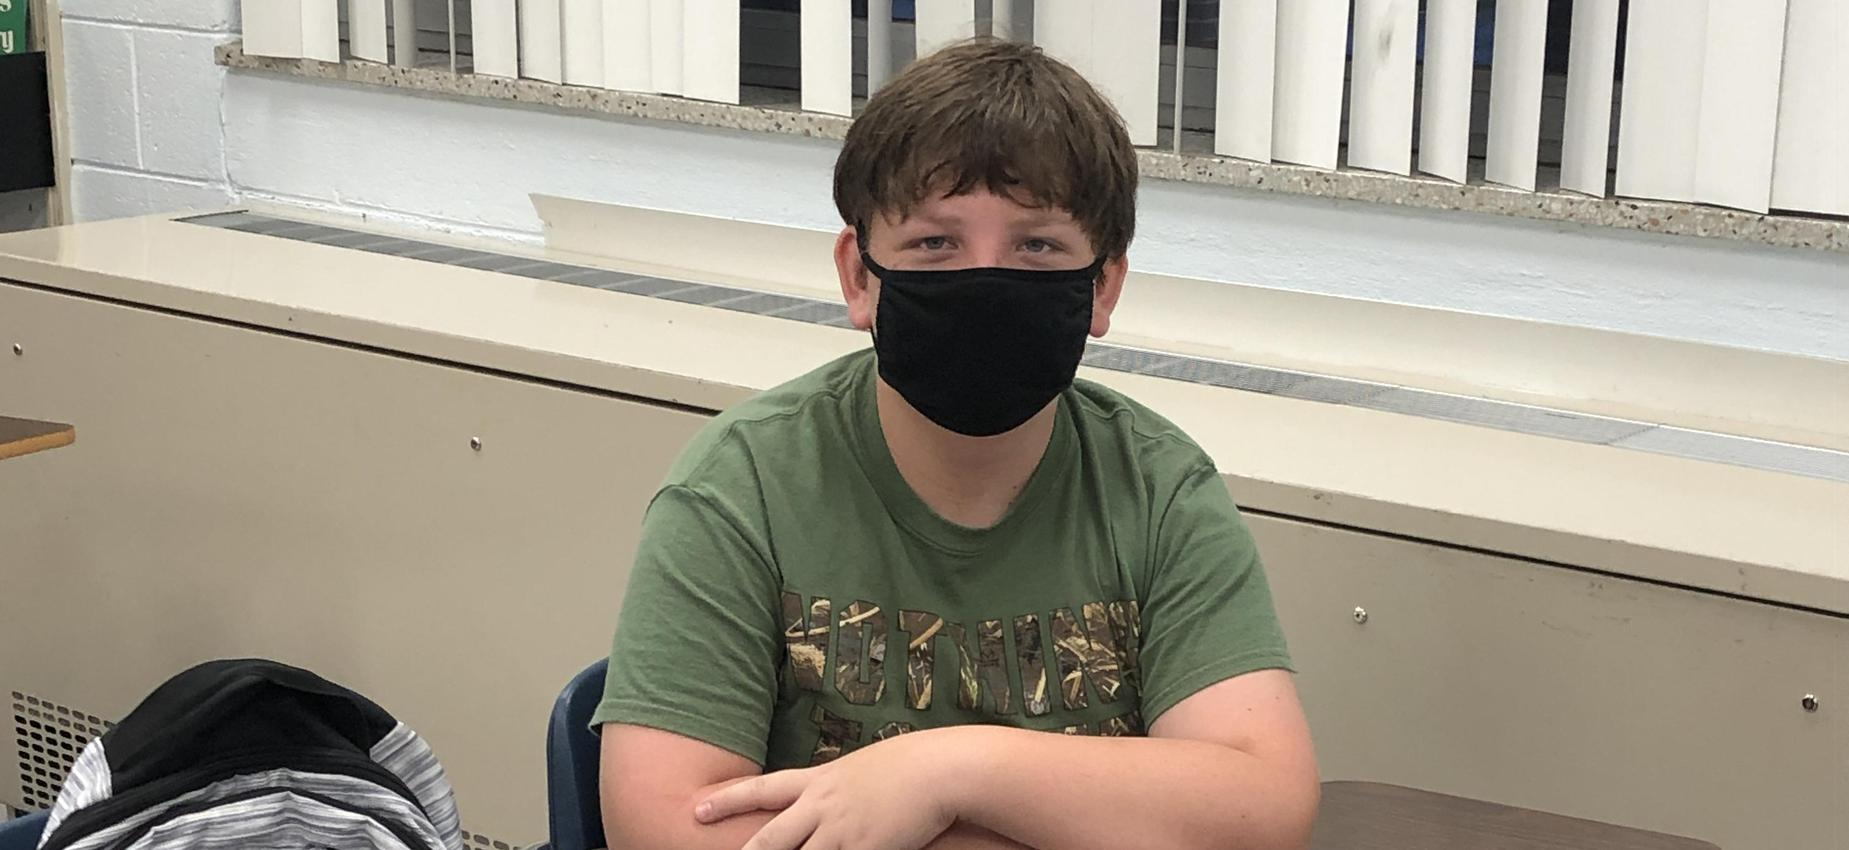 A student wears a mask while sitting at a desk.